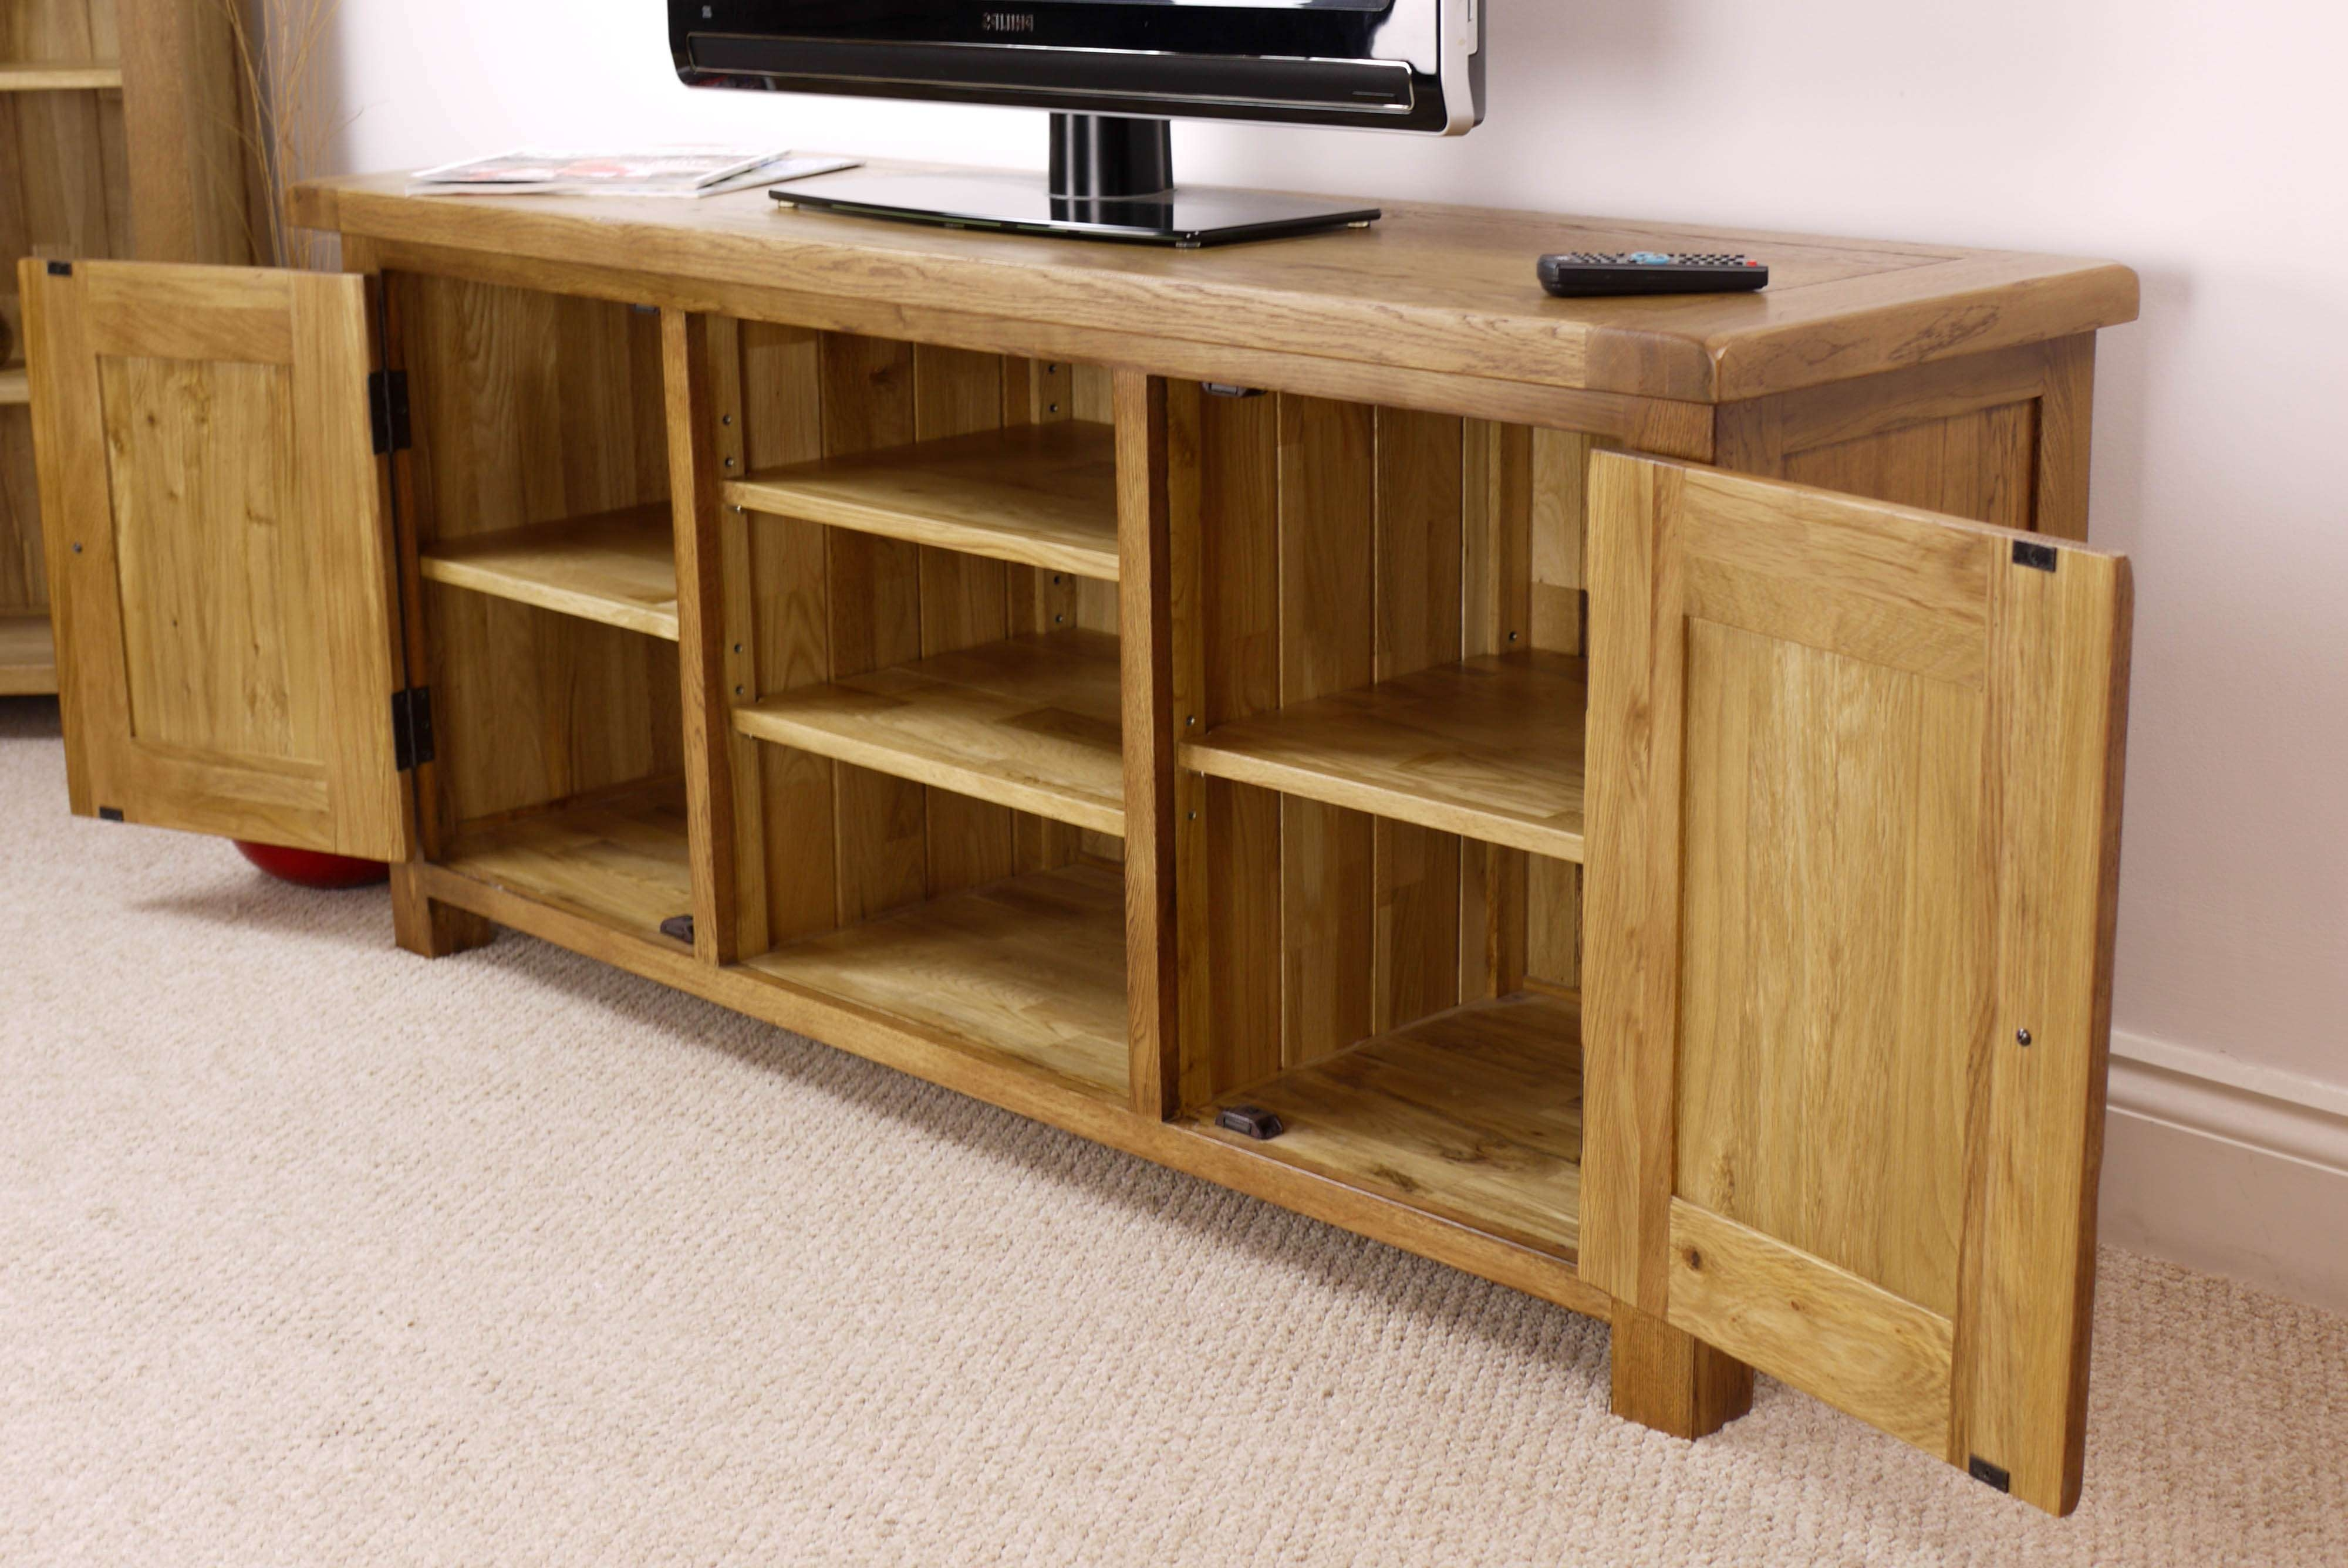 Peaceably Plant Sofa Carpet As Wells As Flat Screens Universal Tv With Regard To Long Oak Tv Stands (View 16 of 20)